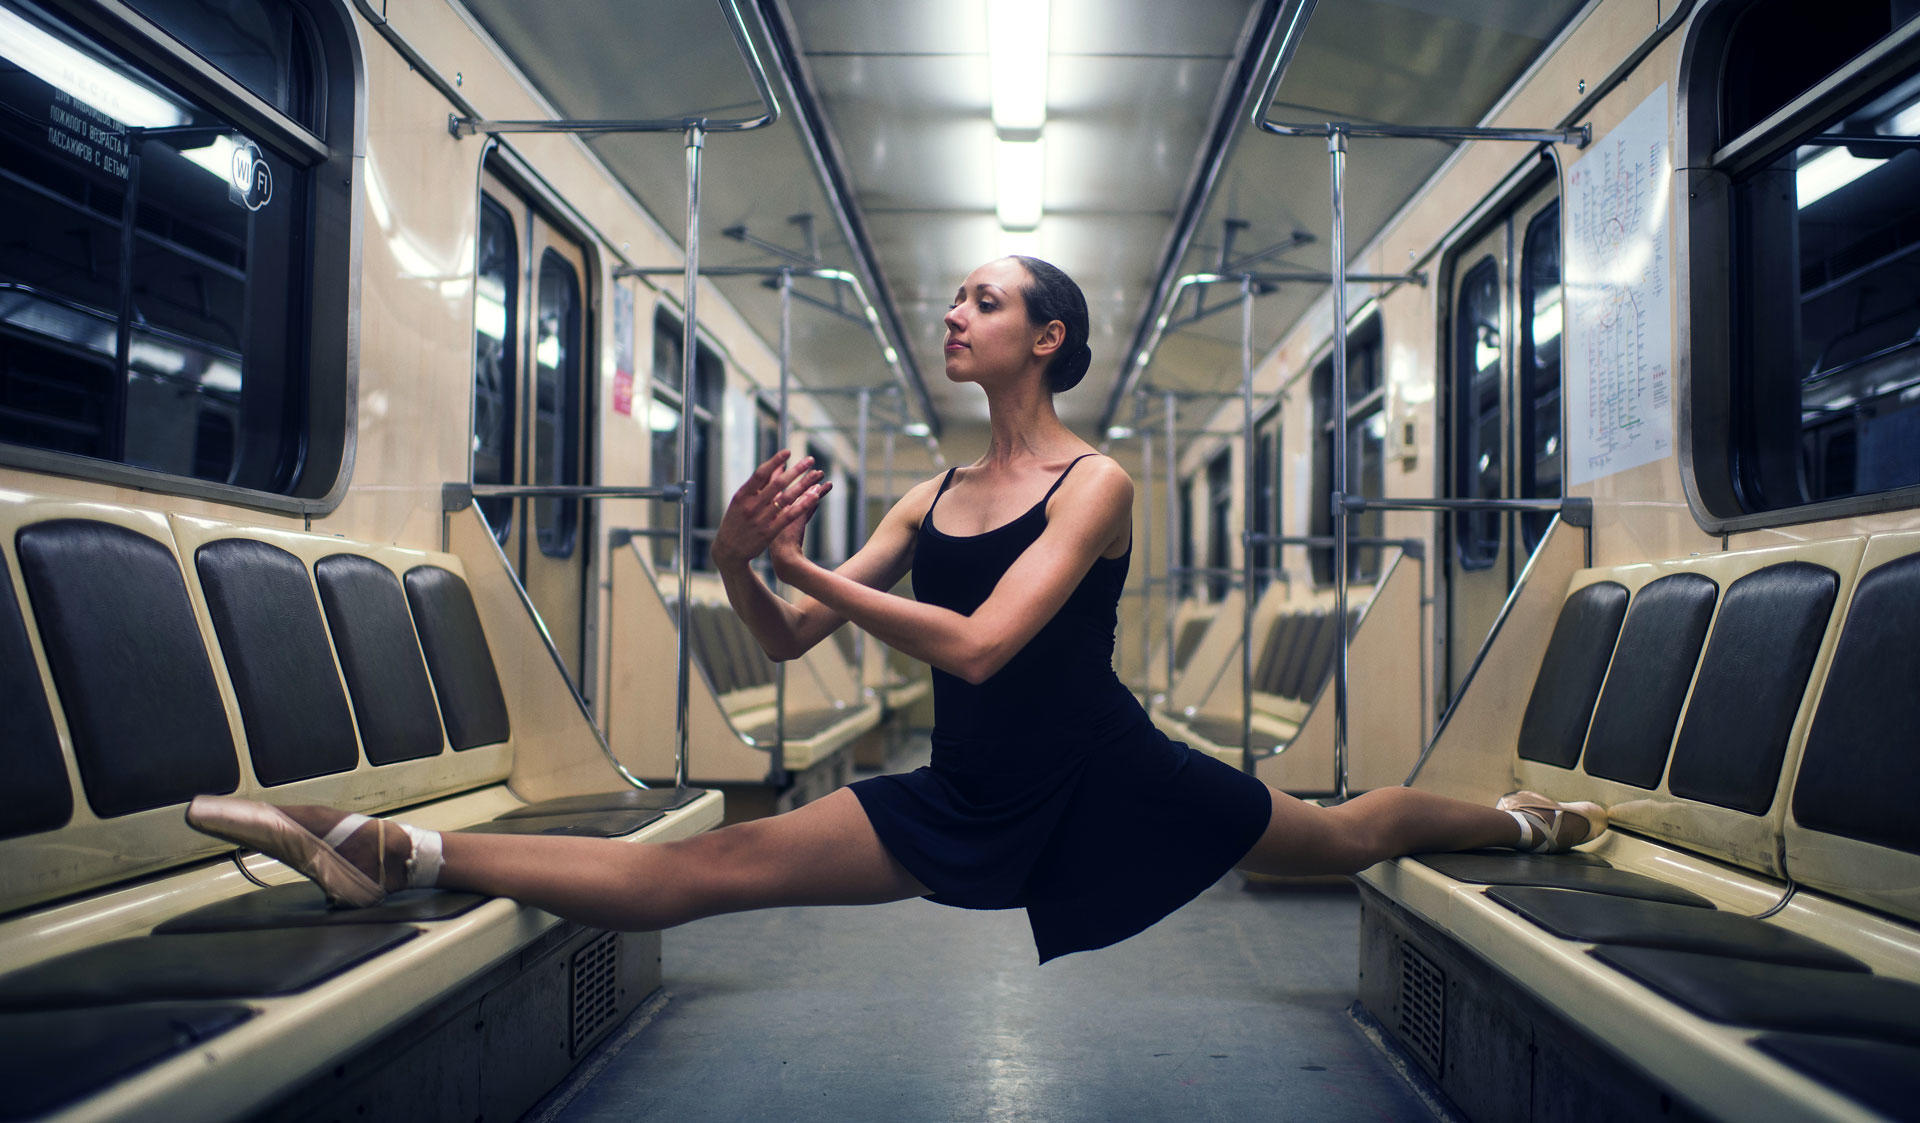 A ballet dancer making a split on the benches of an underground. Image of the Master's Programme in Russian Studies at the University of Helsinki.